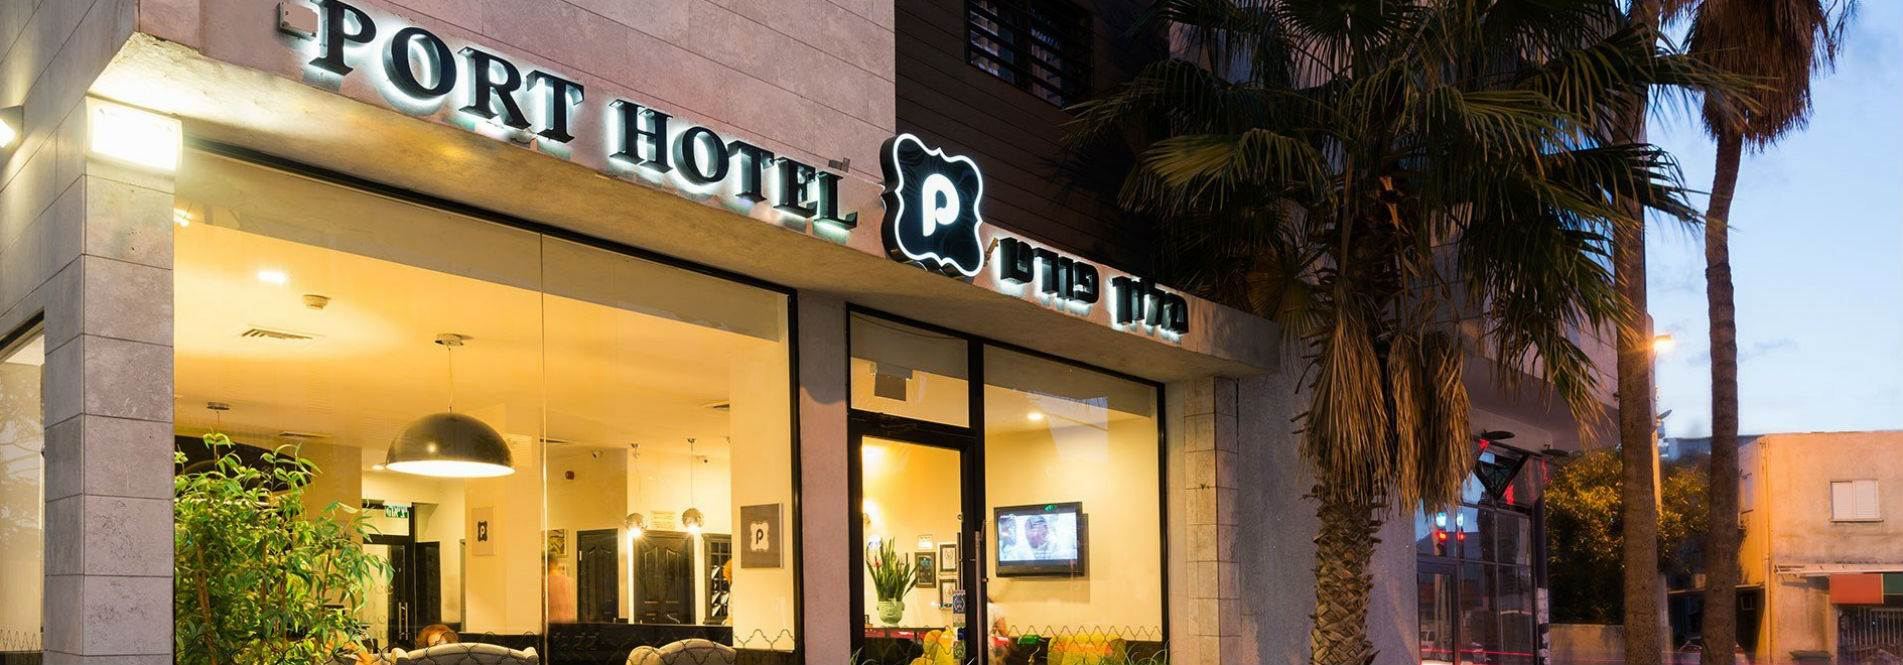 Special Offers Hotel Port